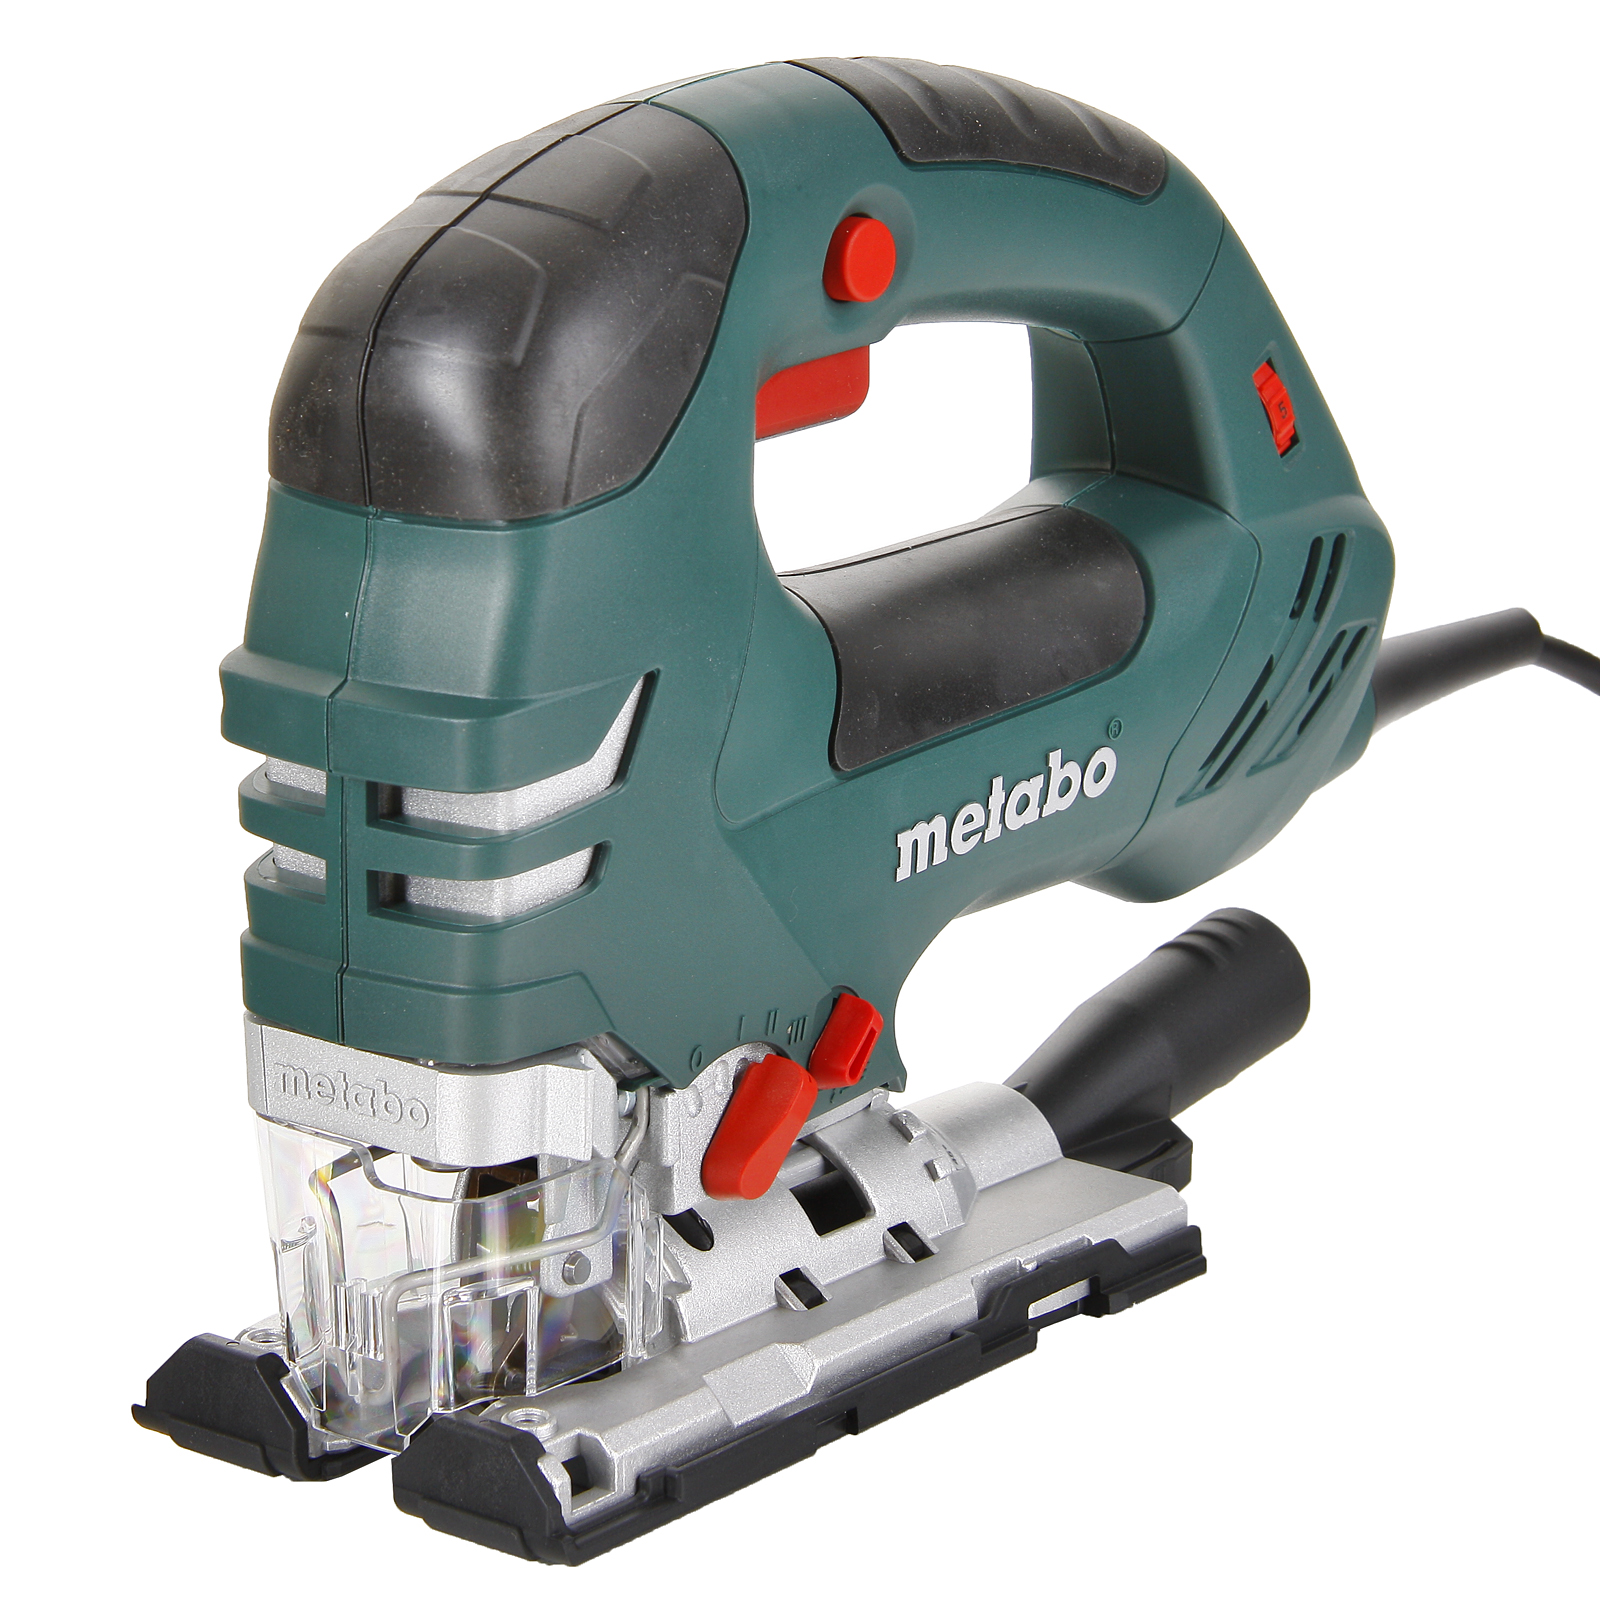 Лобзик Metabo Steb 140 plus в кейсе